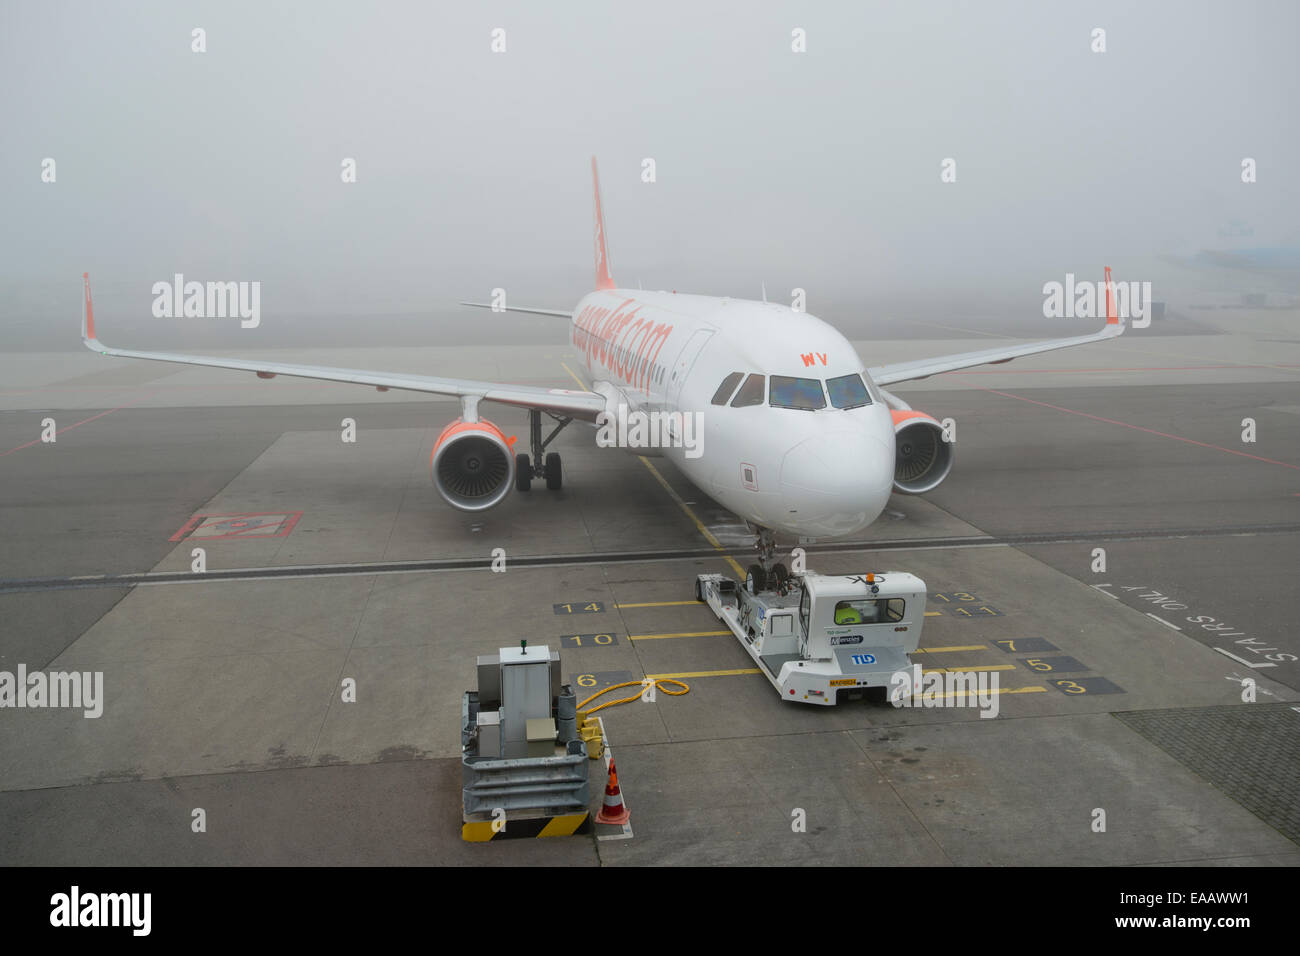 Fog delays an EasyJet Airbus A320 airliner from taking off at Amsterdam Schiphol Airport (Editorial use only). - Stock Image